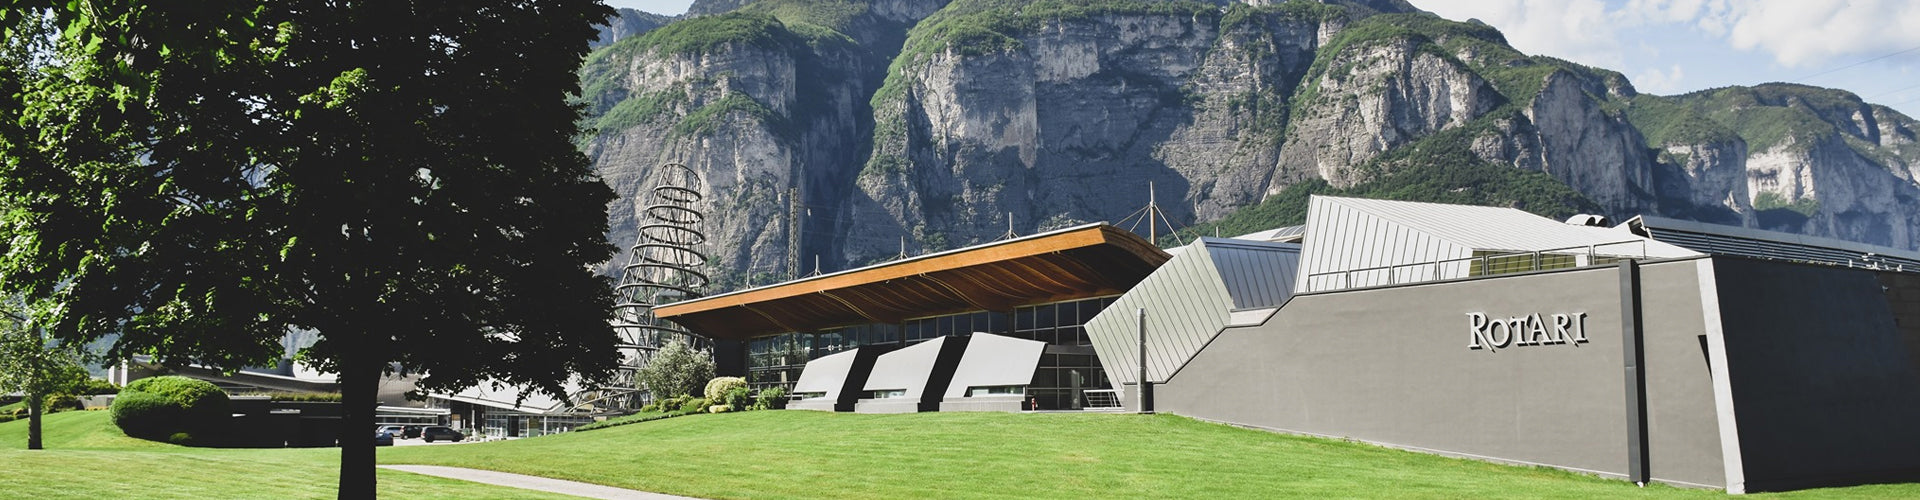 The Rotari Winery in the Trento region of Italy